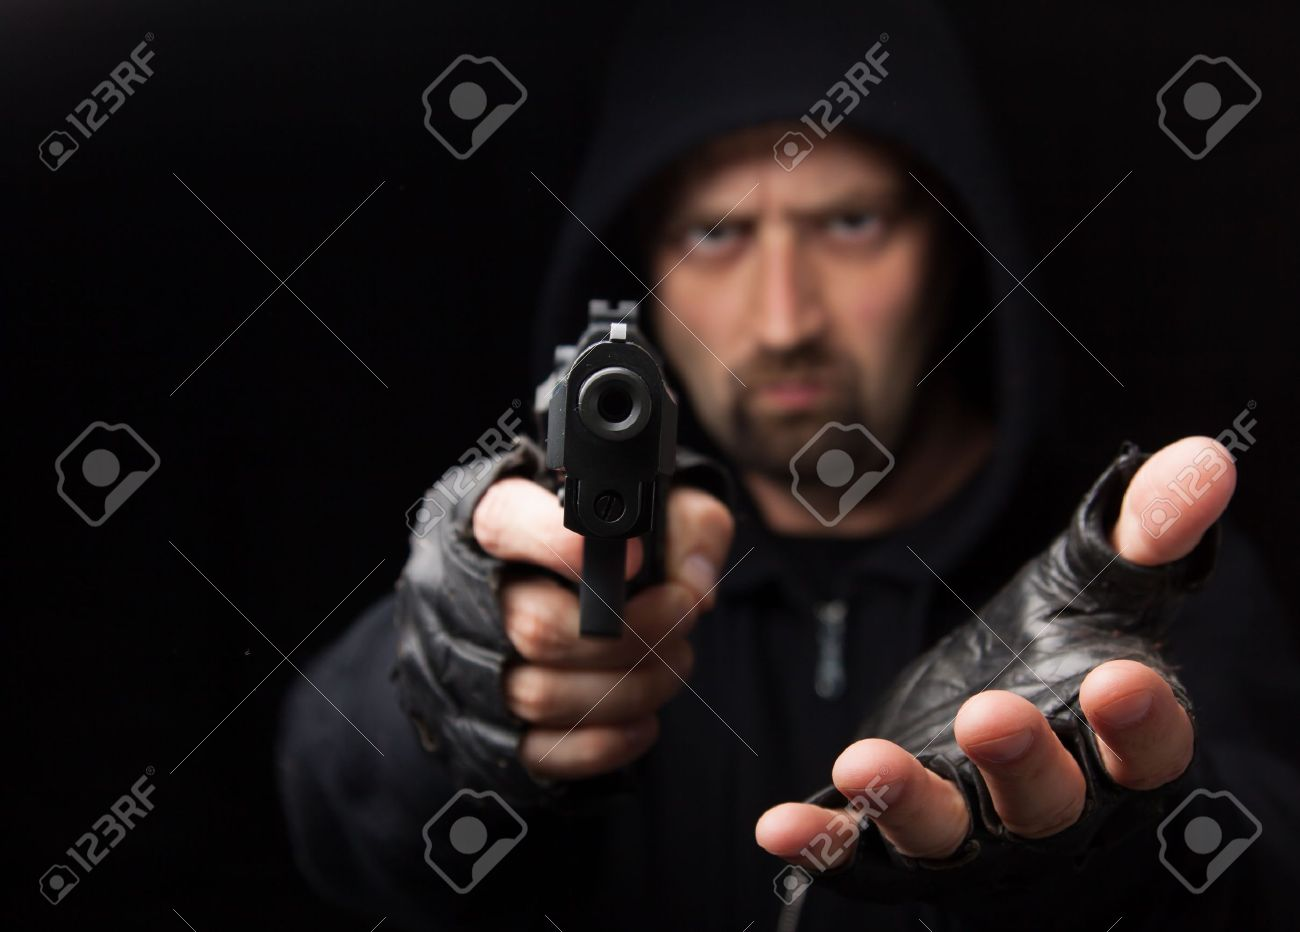 Robber with gun holding out hand against a black background - 14624263